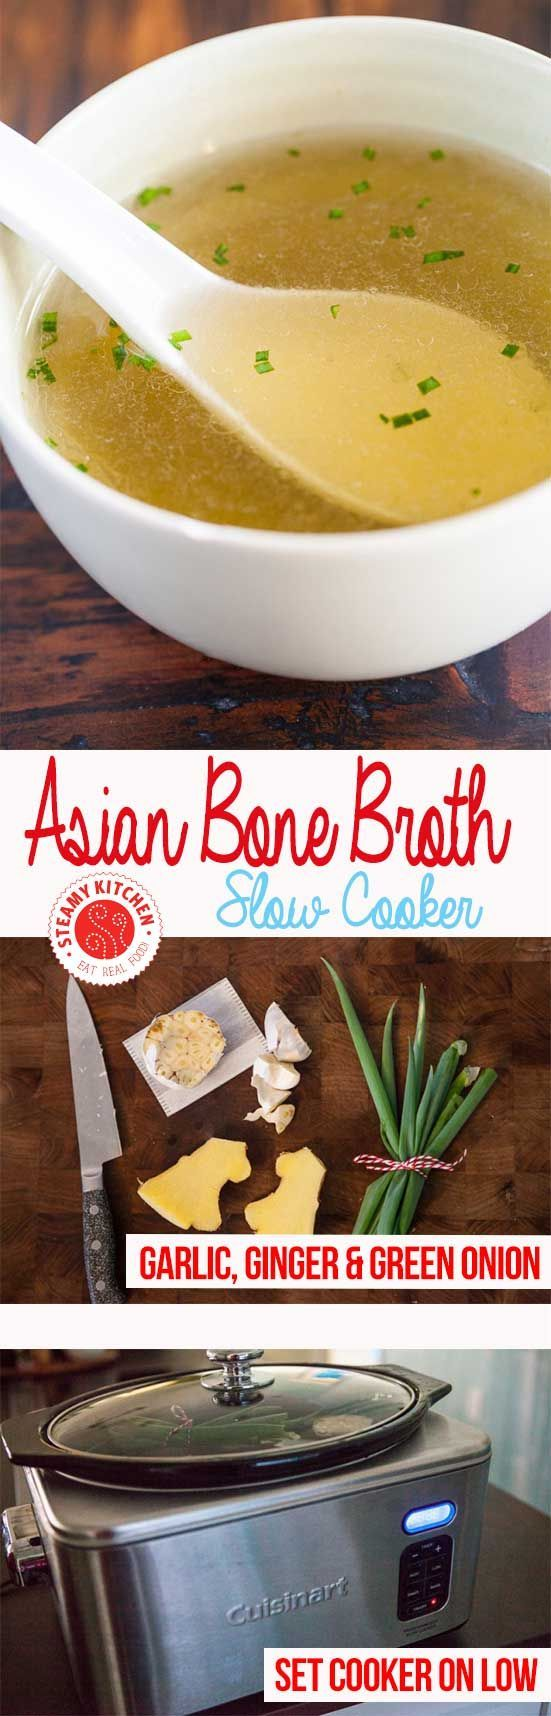 Asian Style Slow Cooker Bone Broth